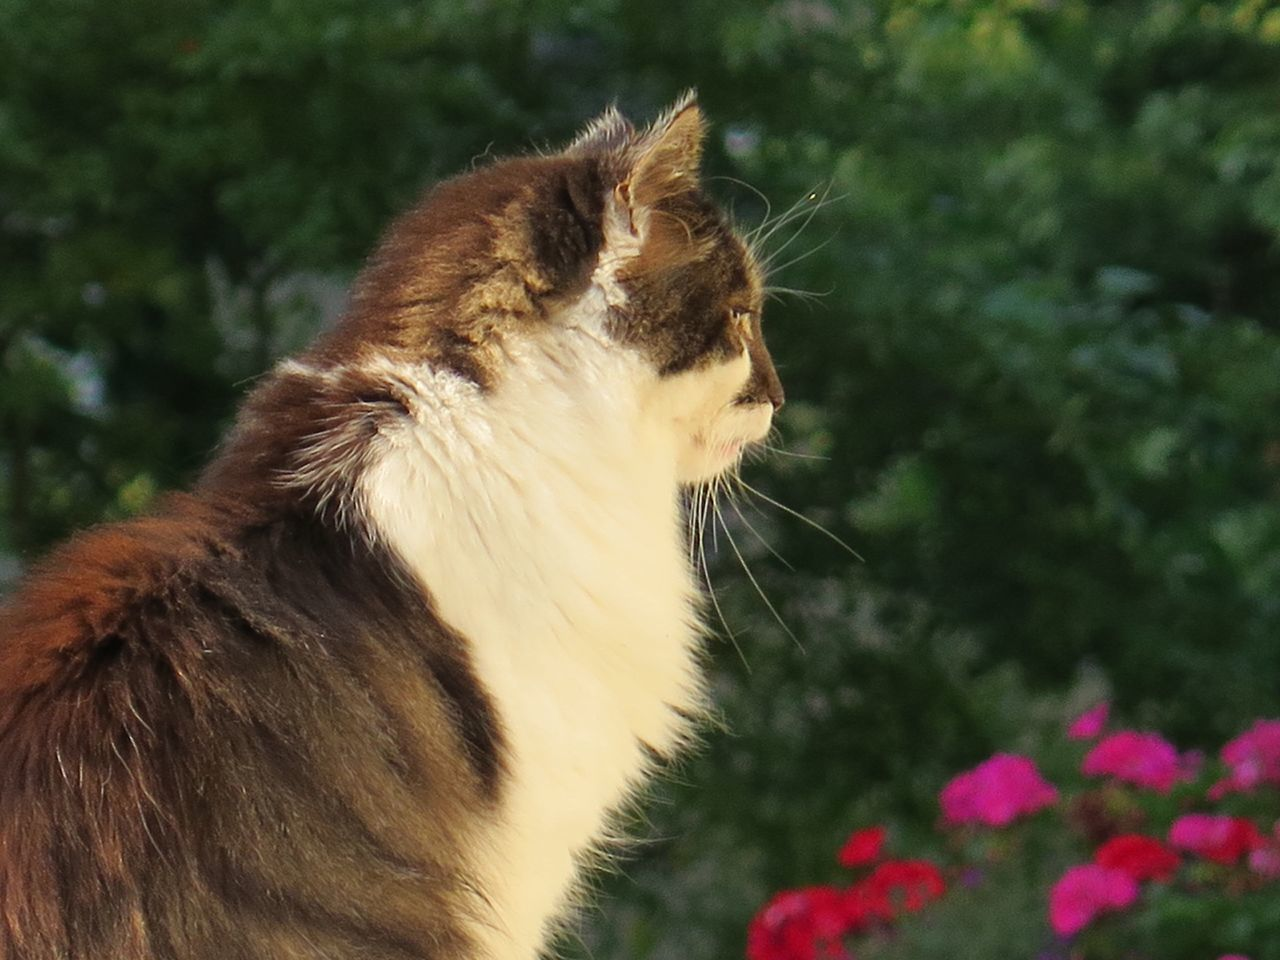 one animal, domestic cat, animal themes, domestic animals, mammal, feline, pets, no people, focus on foreground, whisker, day, side view, plant, outdoors, nature, close-up, siamese cat